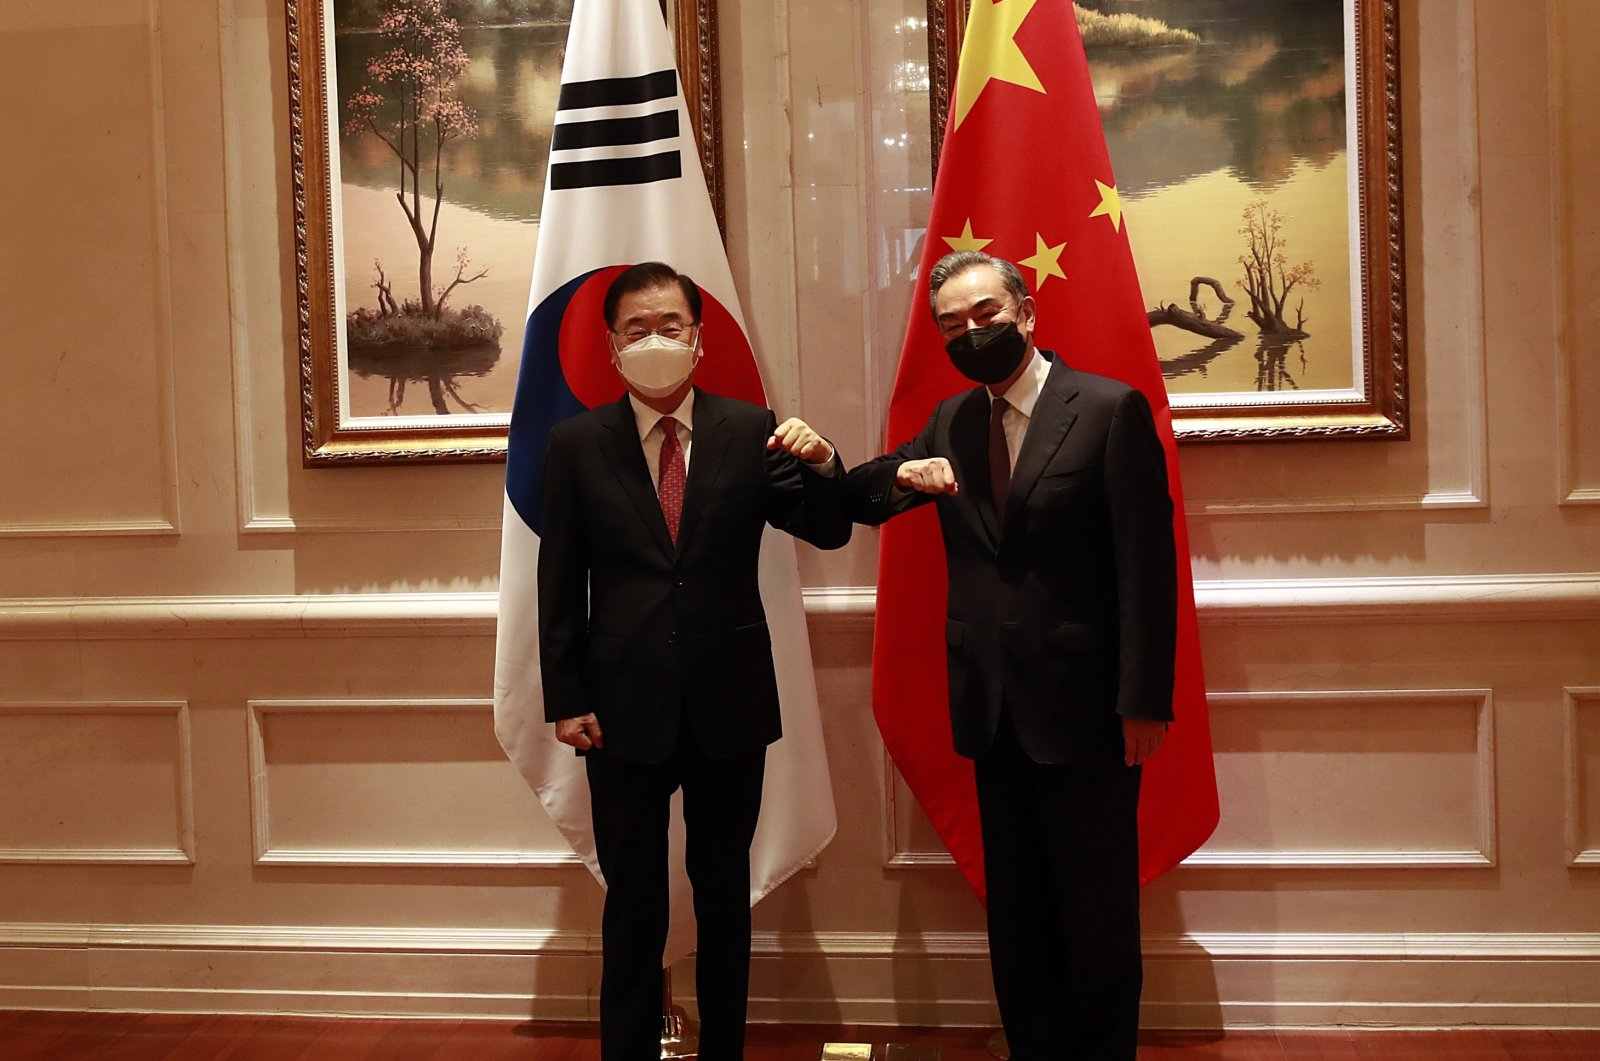 South Korean Foreign Minister Chung Eui-yong (L) and his Chinese counterpart Wang Yi (R) bump elbows as they pose for photographs ahead of their talks in Xiamen, China, April 03, 2021. (EPA Photo)